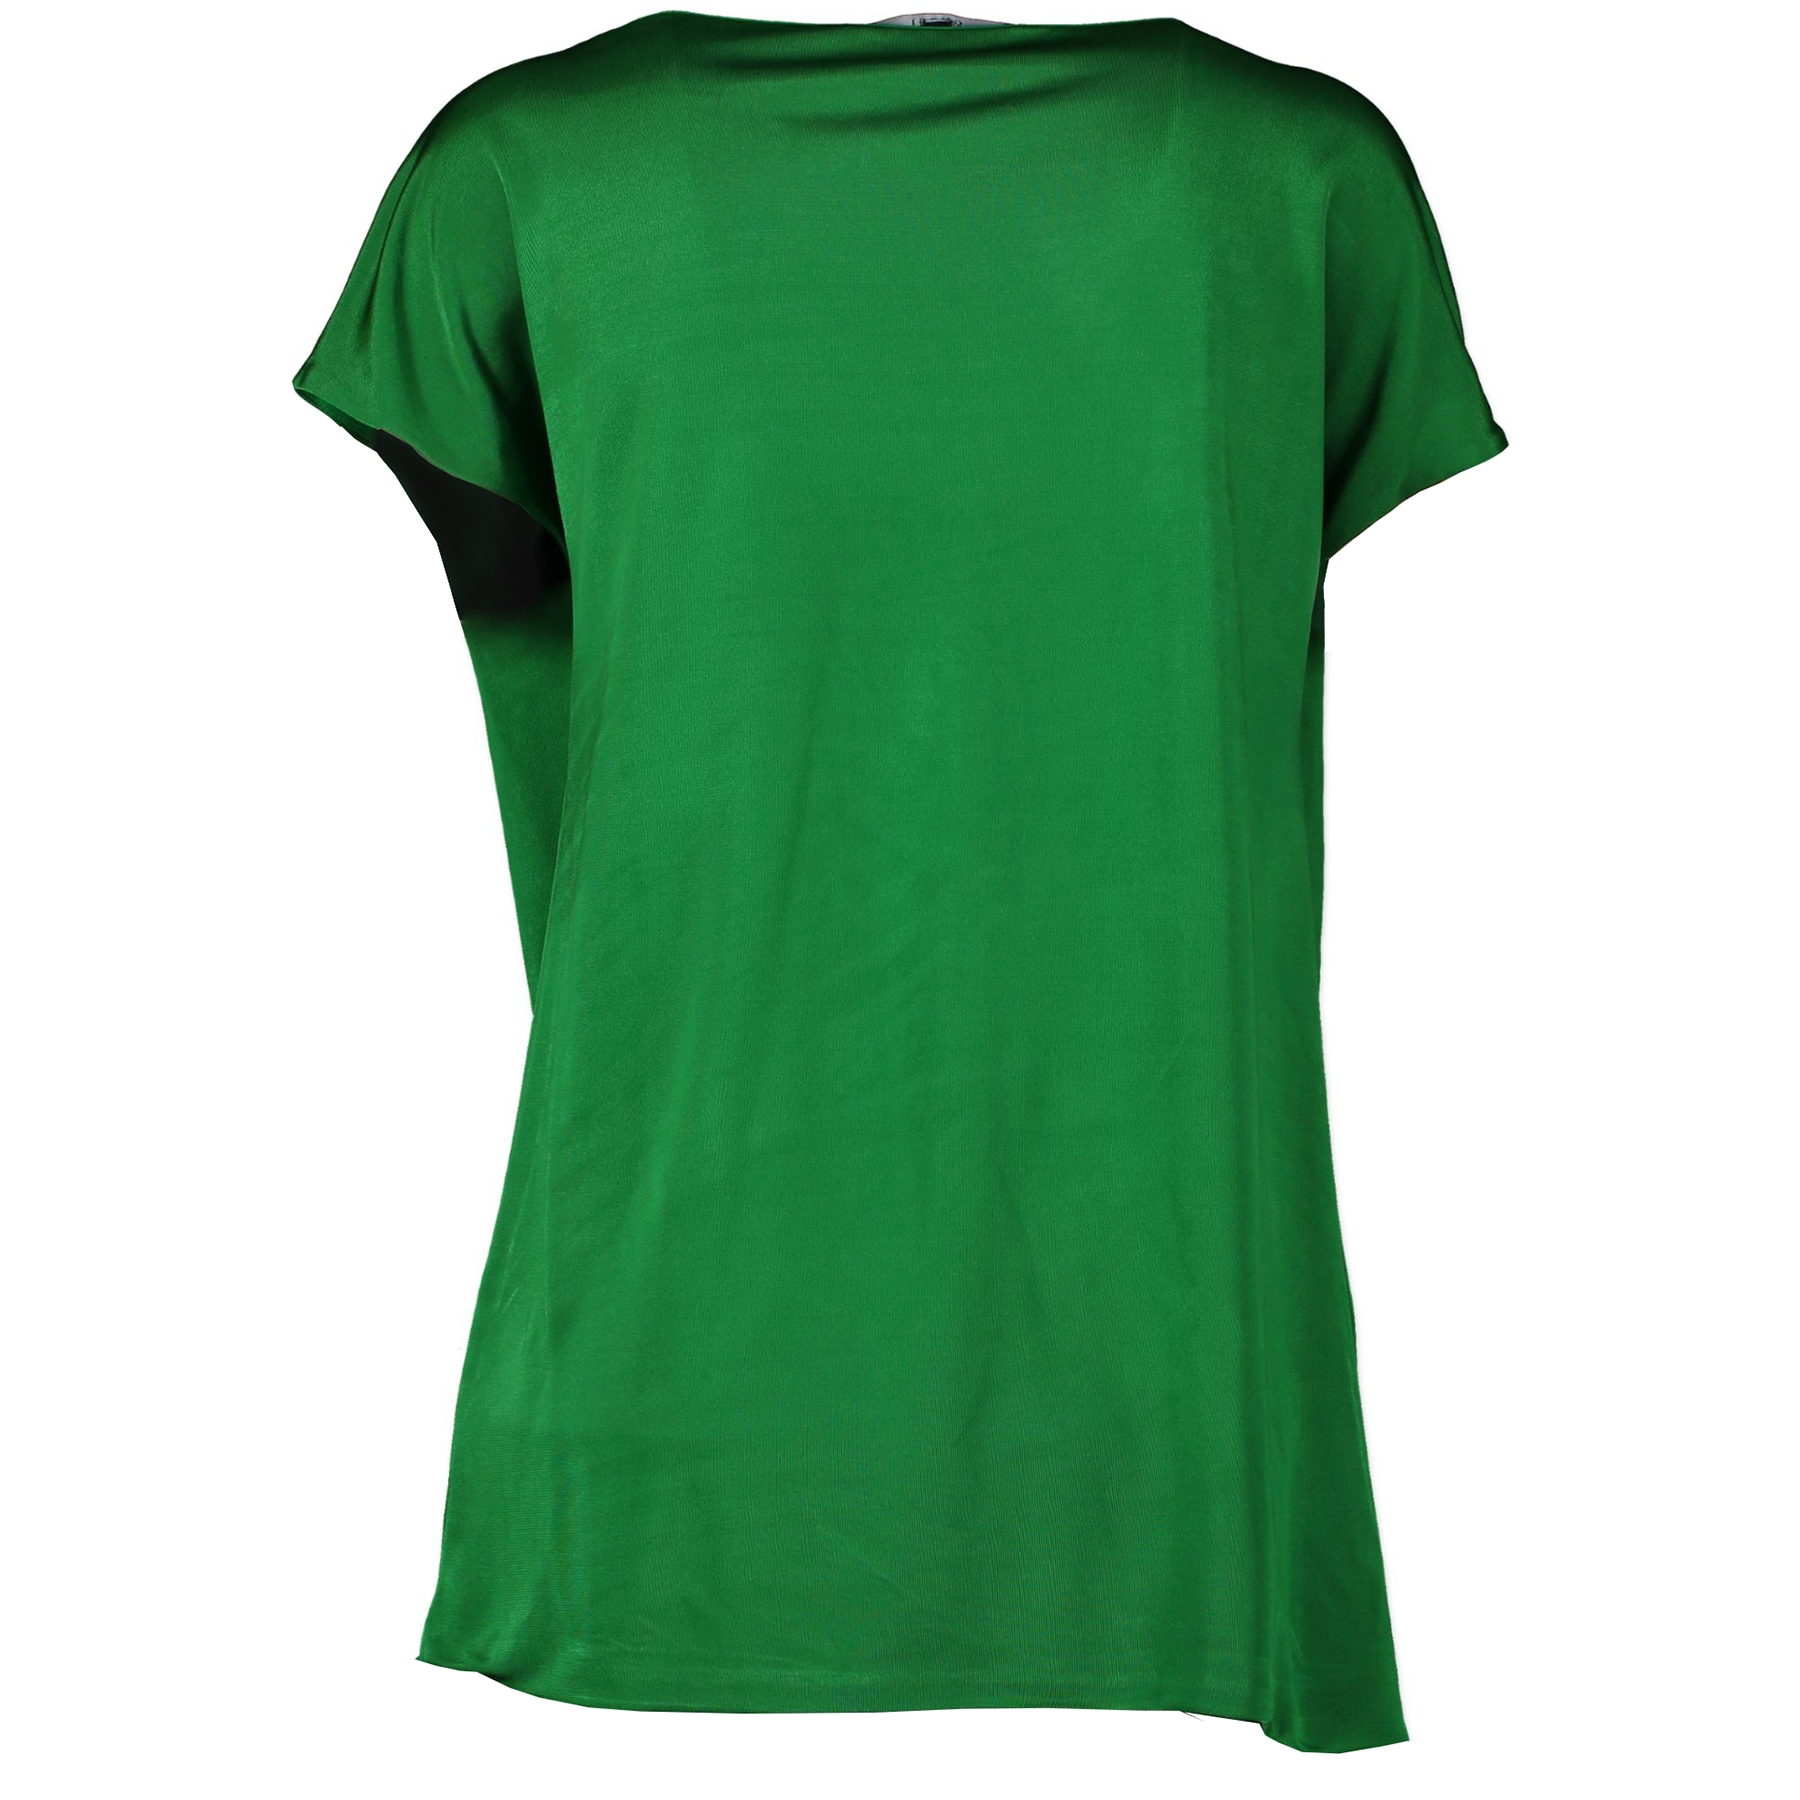 Gucci Green Waterfall Top - size XL - for sale online with worldwide shipping